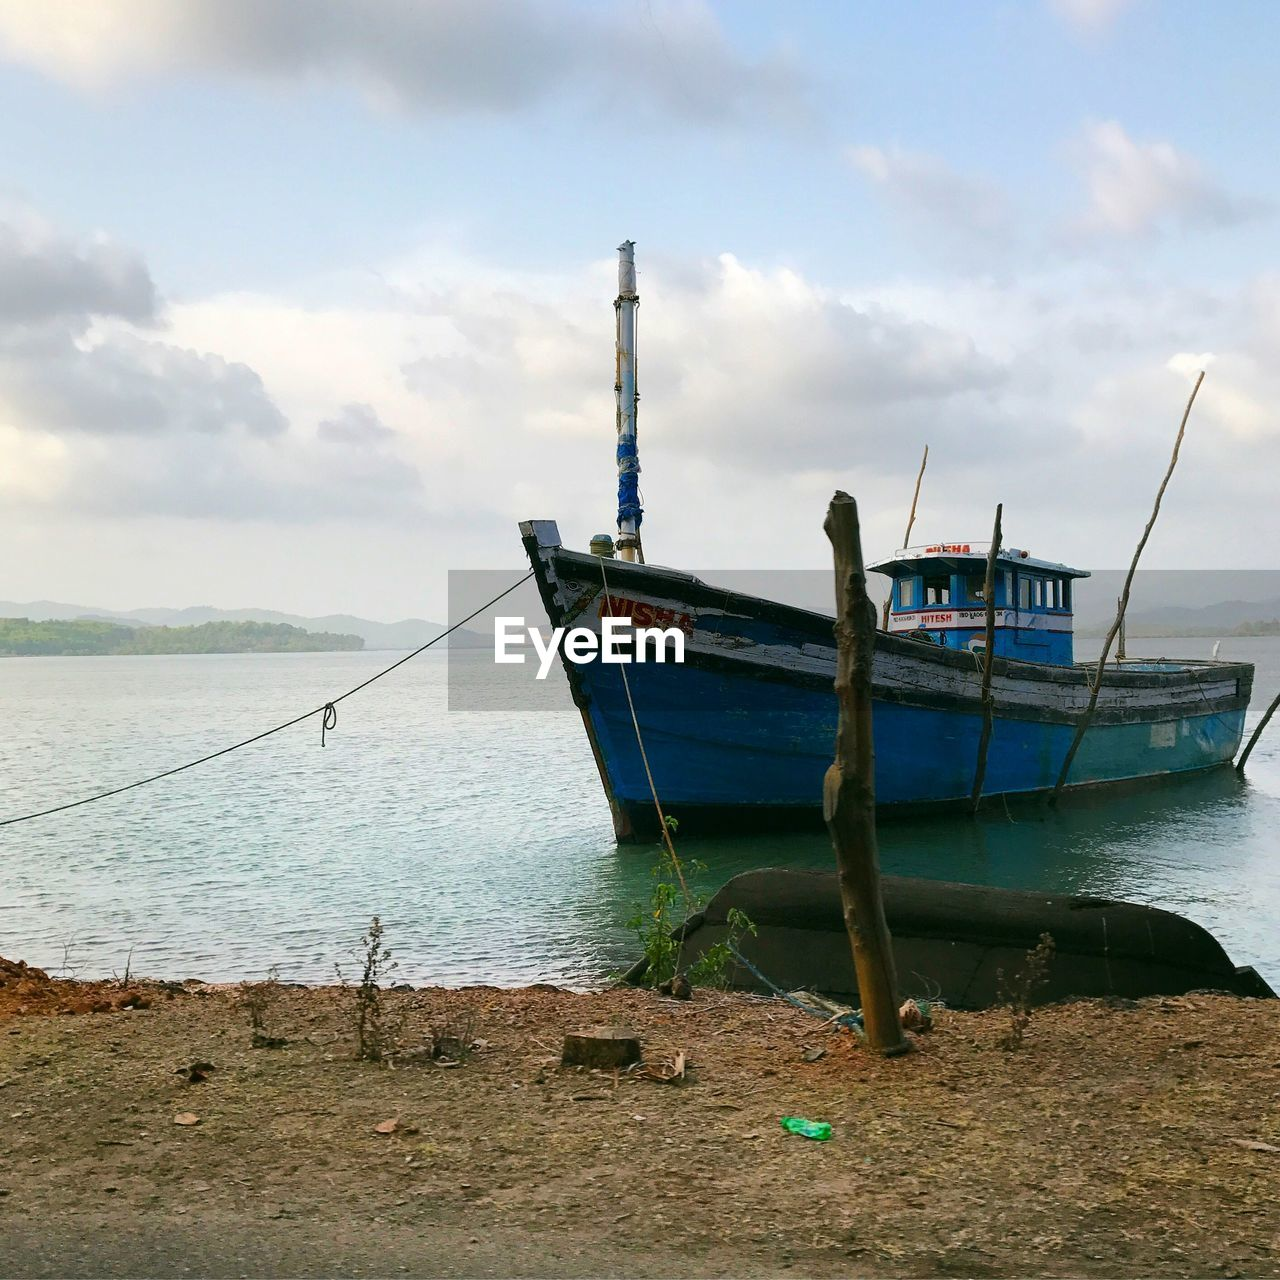 nautical vessel, water, transportation, sky, cloud - sky, mode of transportation, sea, moored, nature, beach, no people, scenics - nature, day, tranquility, horizon, tranquil scene, beauty in nature, horizon over water, land, outdoors, fishing industry, fishing boat, anchored